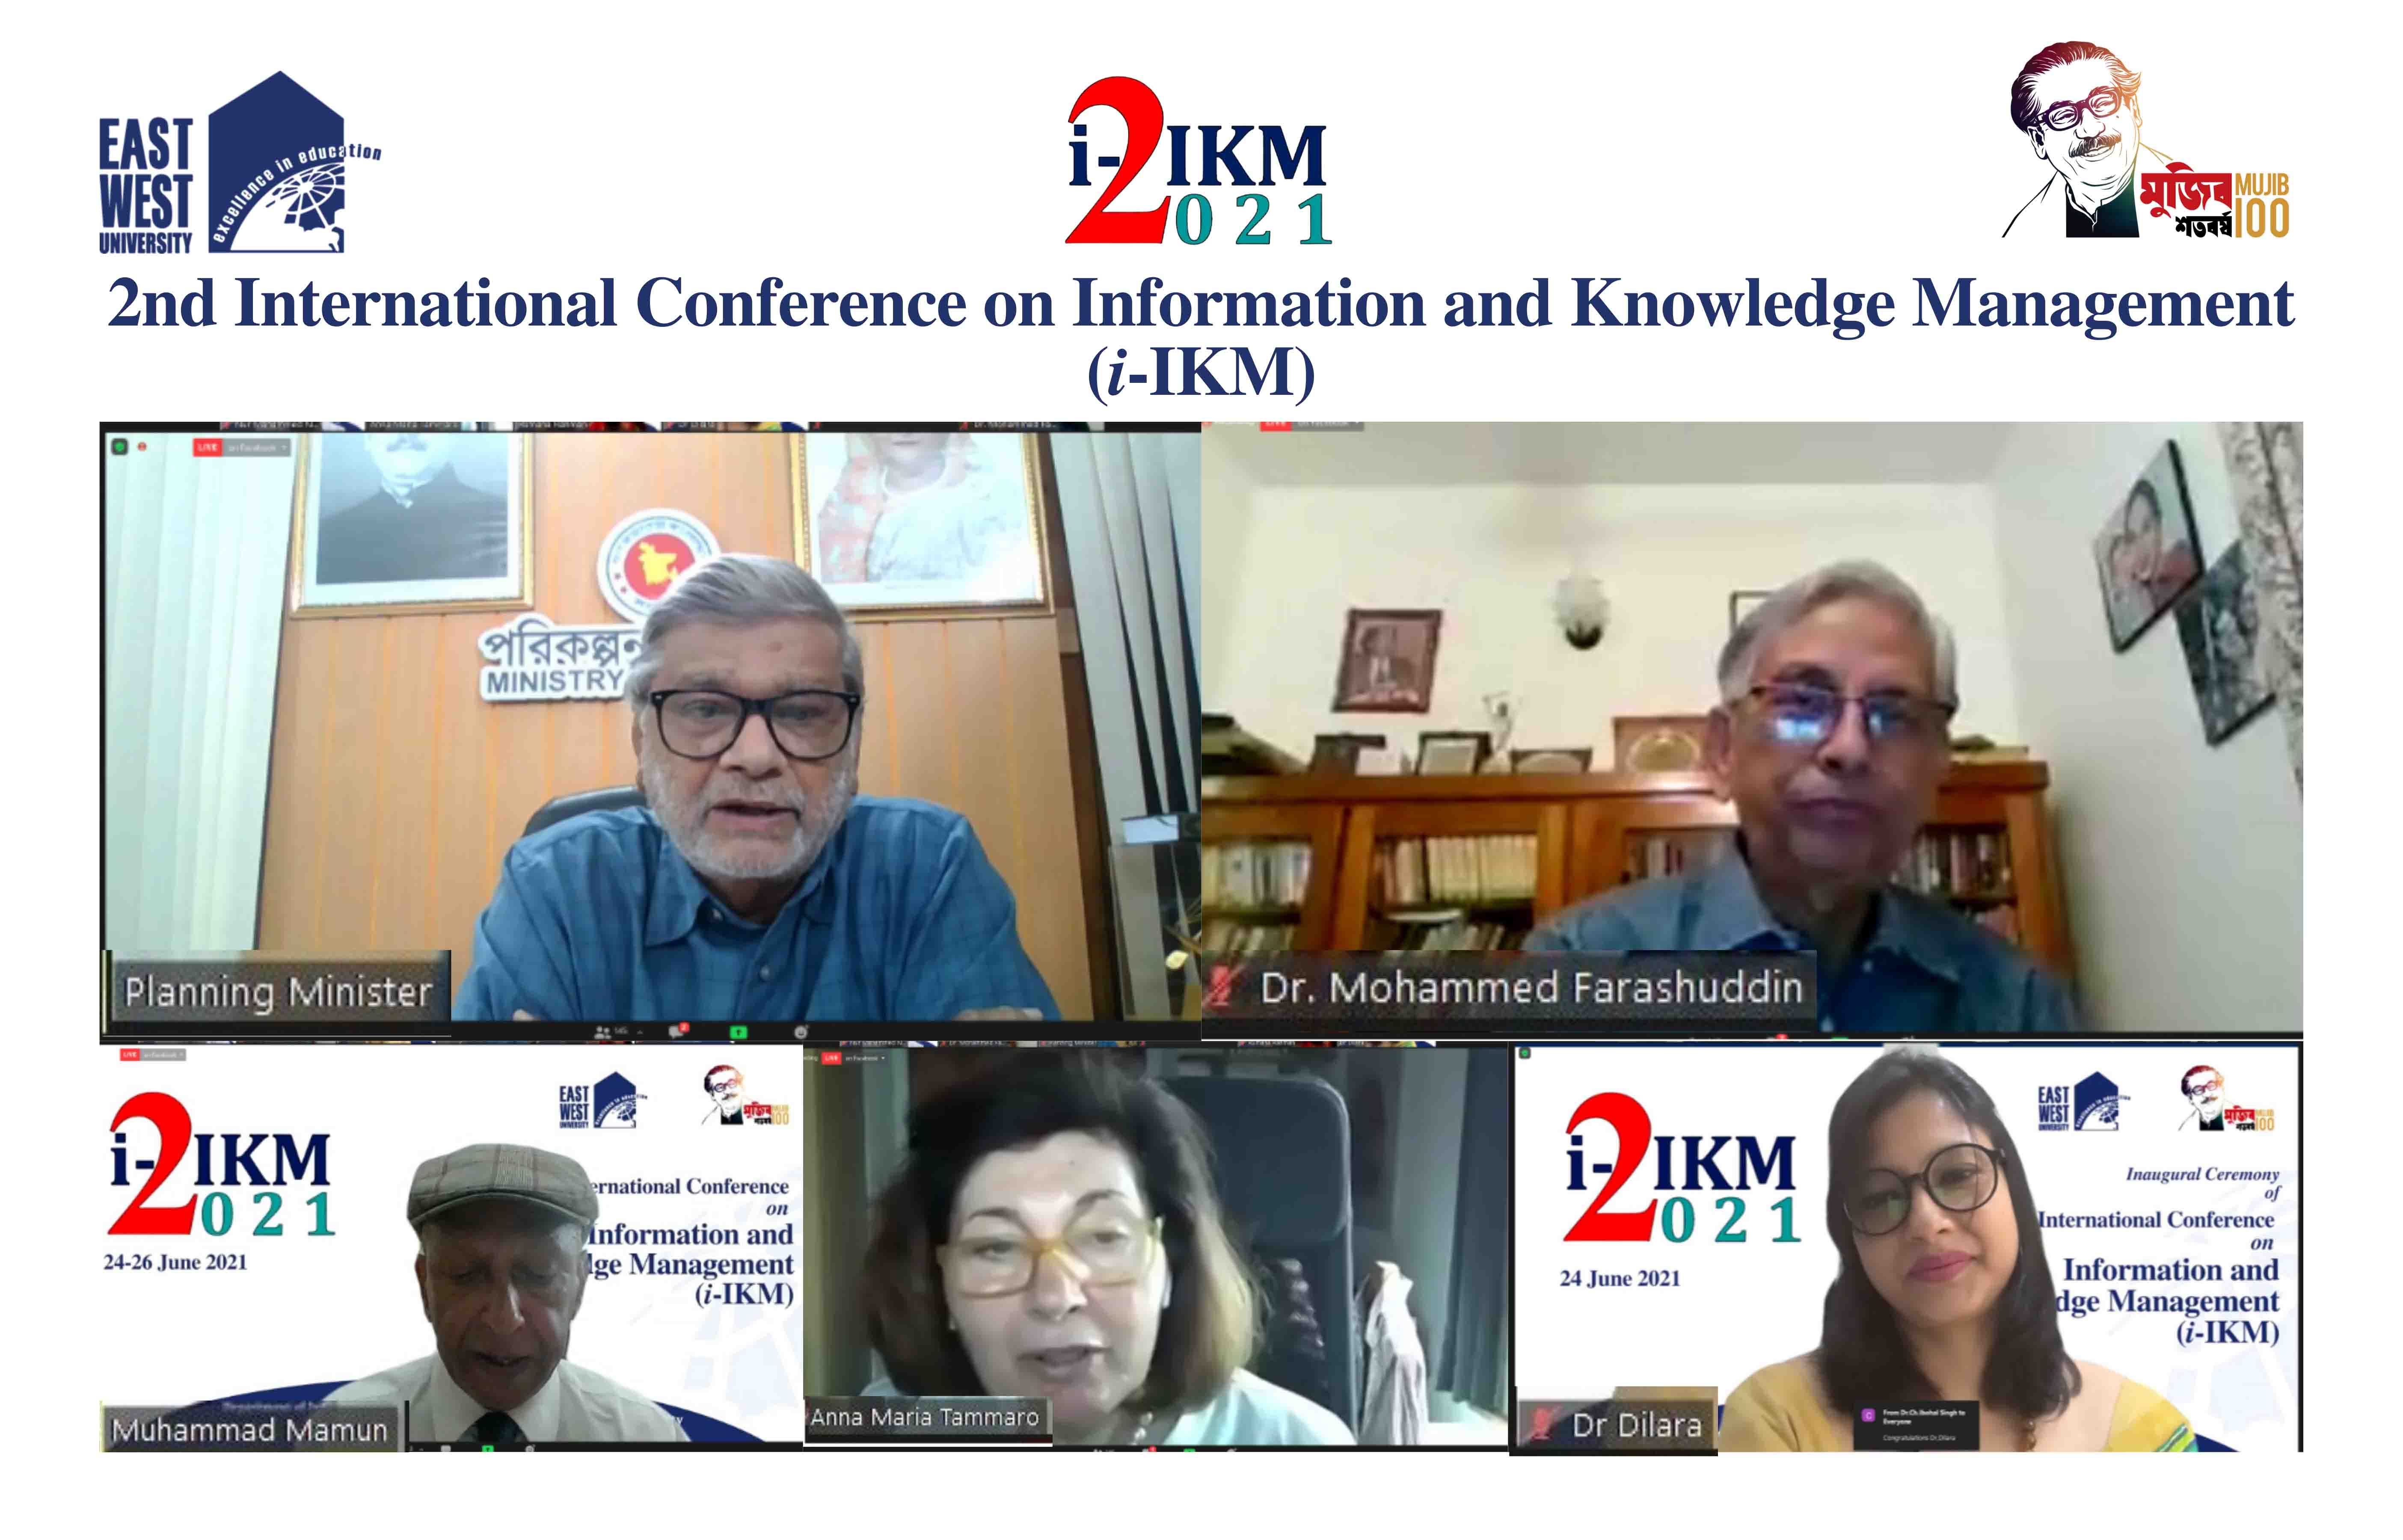 THE INAUGURAL CEREMONY OF THE 2ND INTERNATIONAL CONFERENCE ON INFORMATION AND KNOWLEDGE MANAGEMENT (...